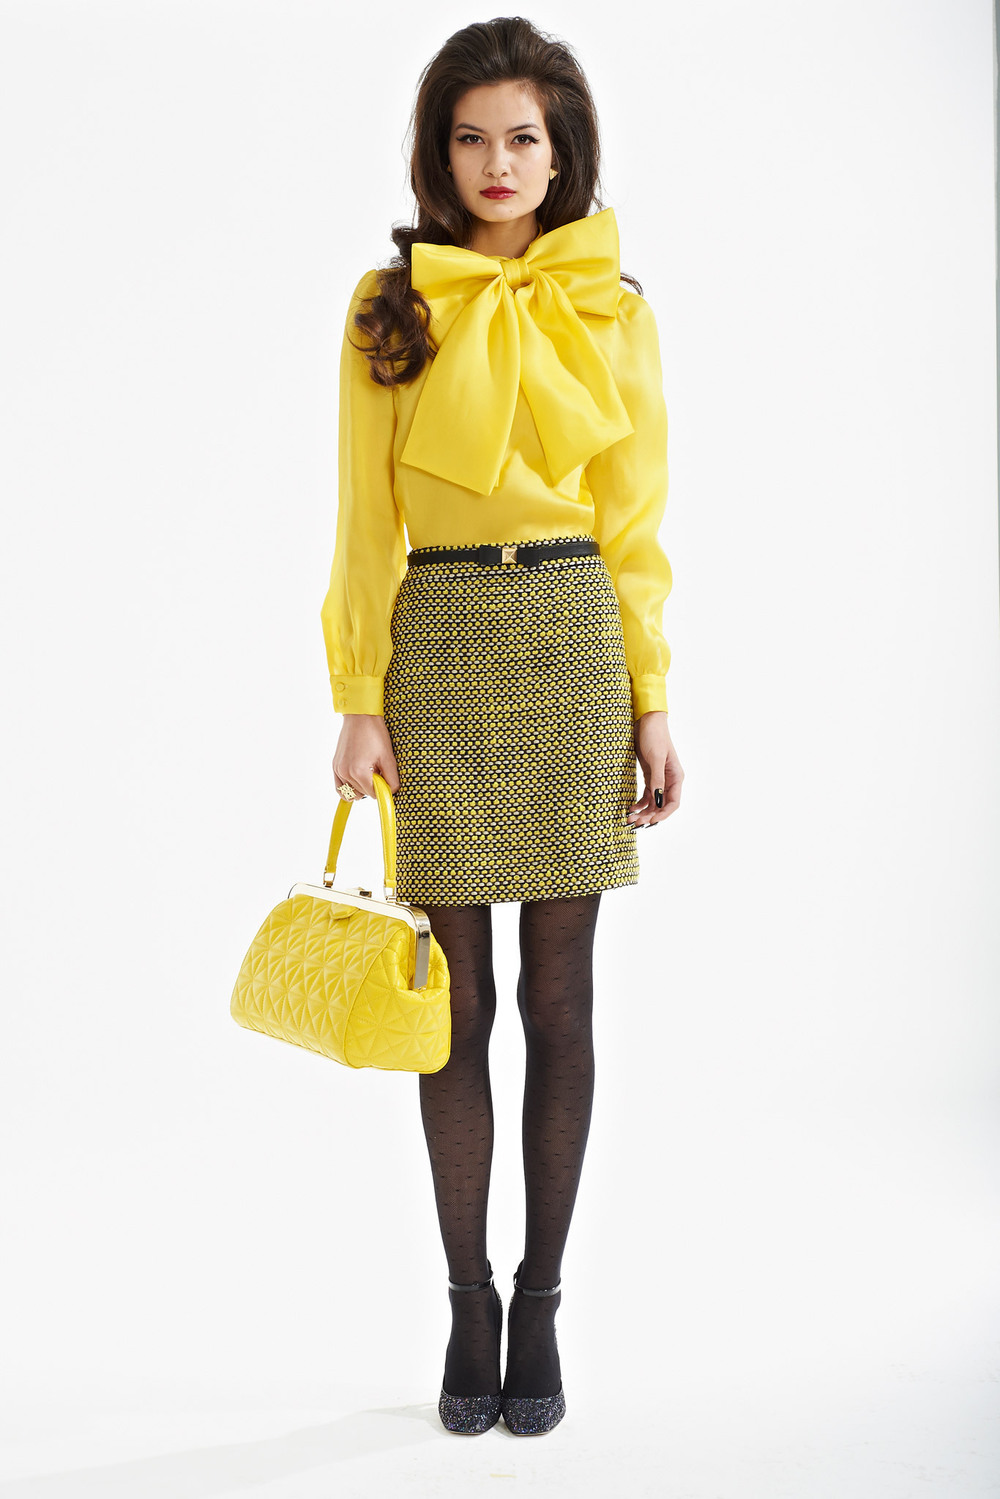 Kate-Spade-New-York-Autumn-Winter-2013-2014-5.jpg